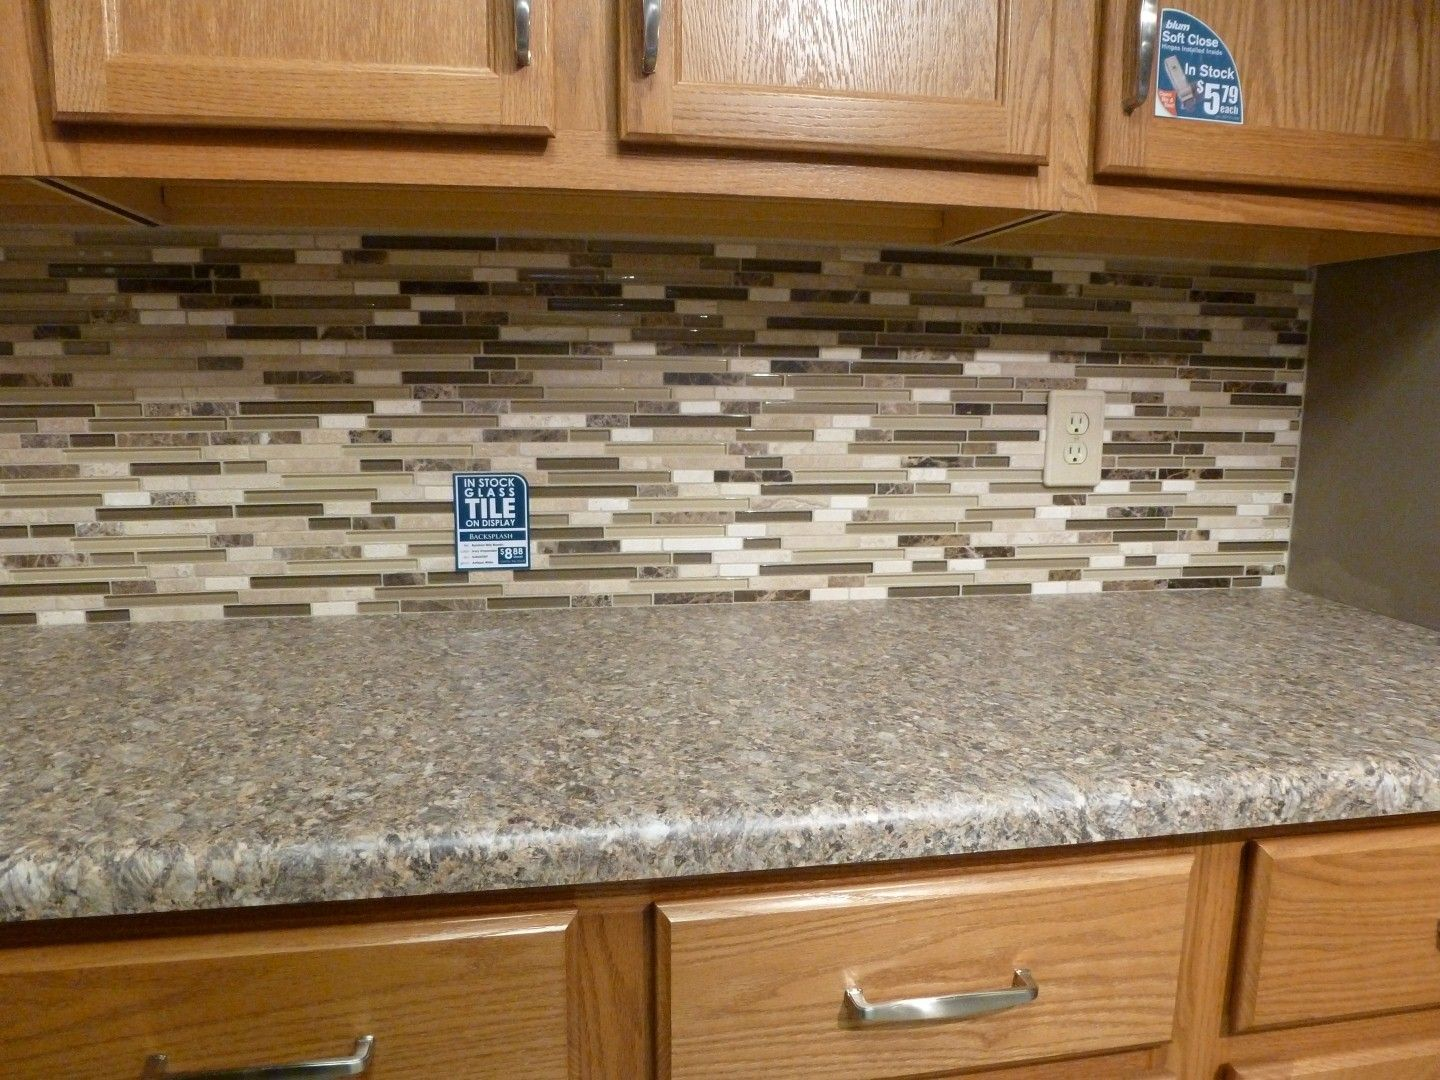 Mosaic kitchen tile backsplash ideas 2565 for Back splash tile